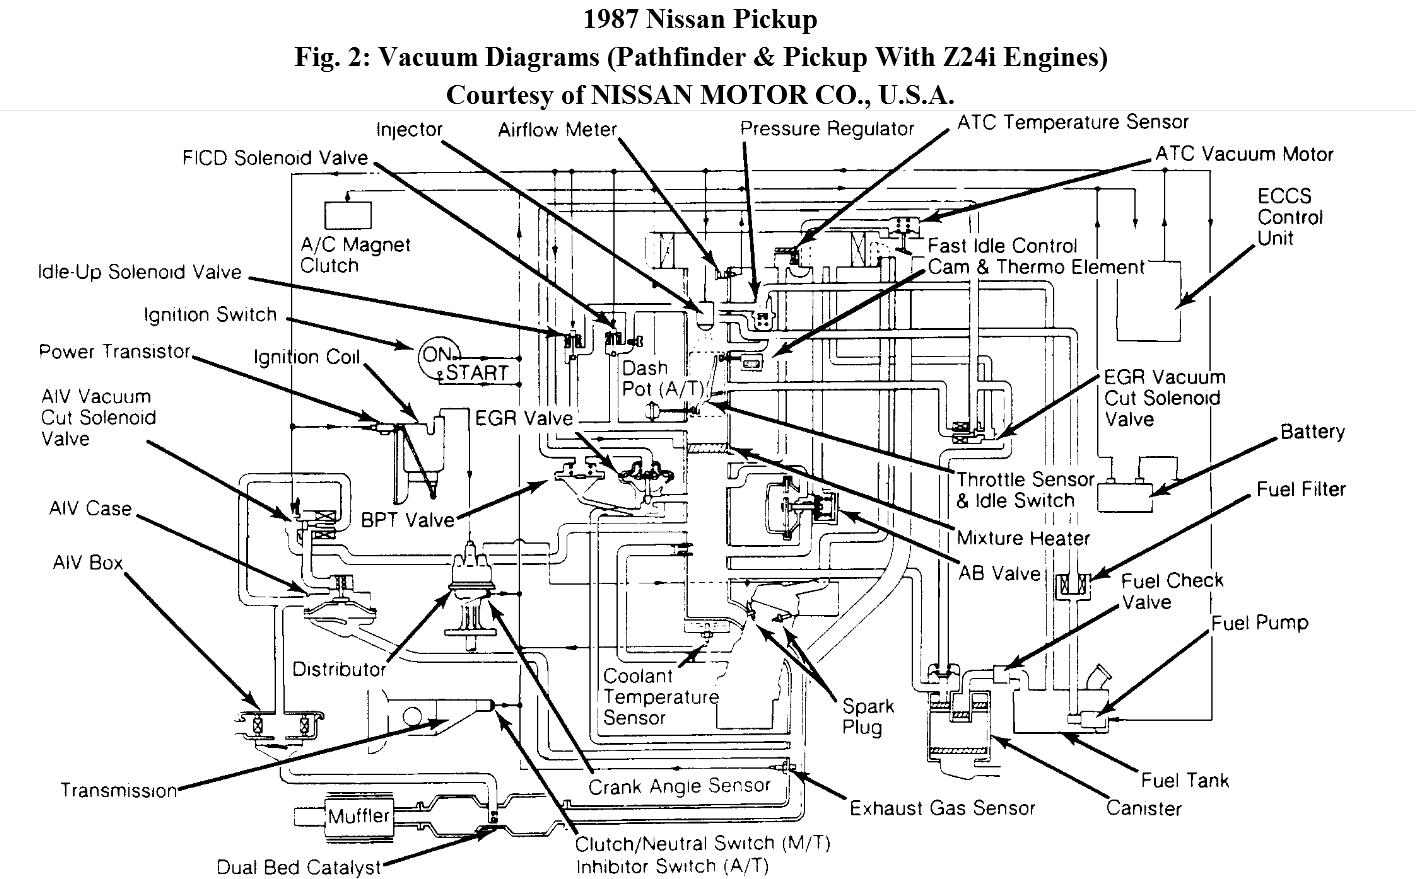 Vacuum Diagram For A Z24 Four Cylinder Two Wheel Drive